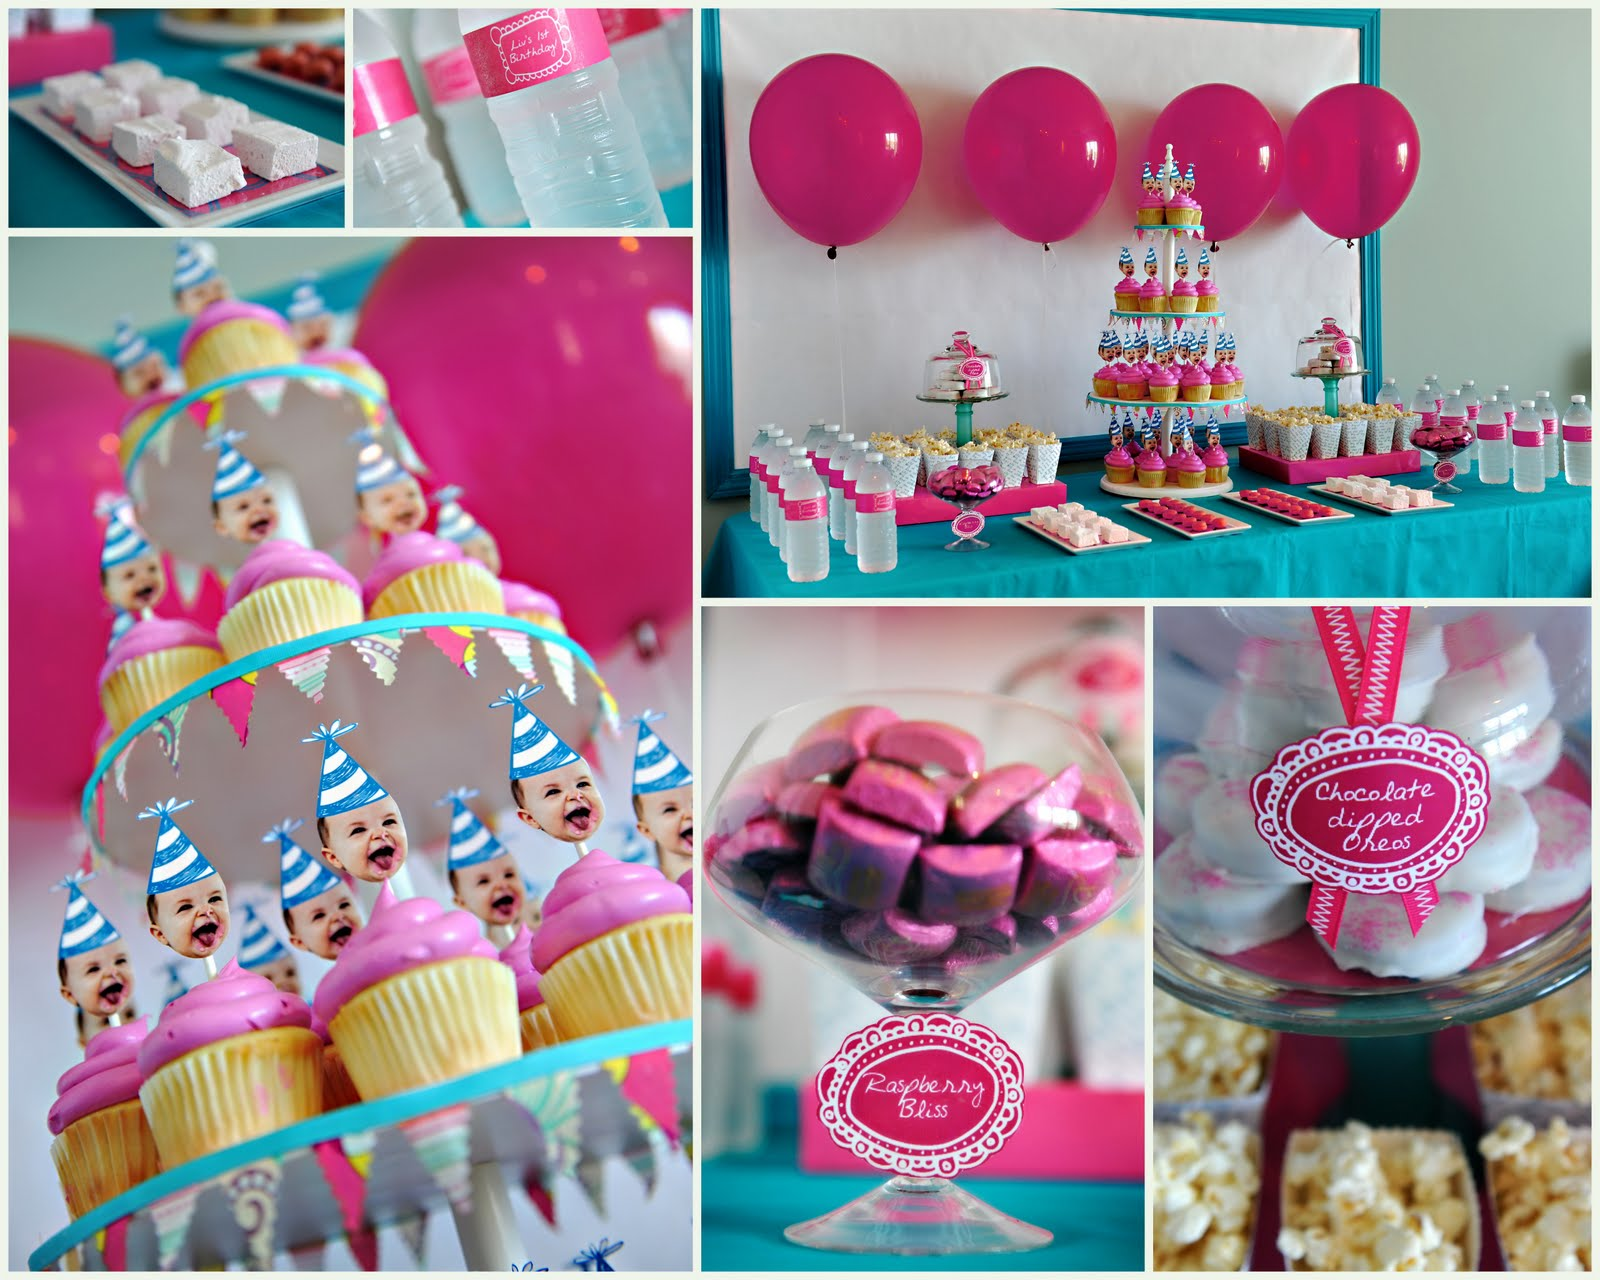 3 year old birthday party themes girl ; birthday-party-ideas-2